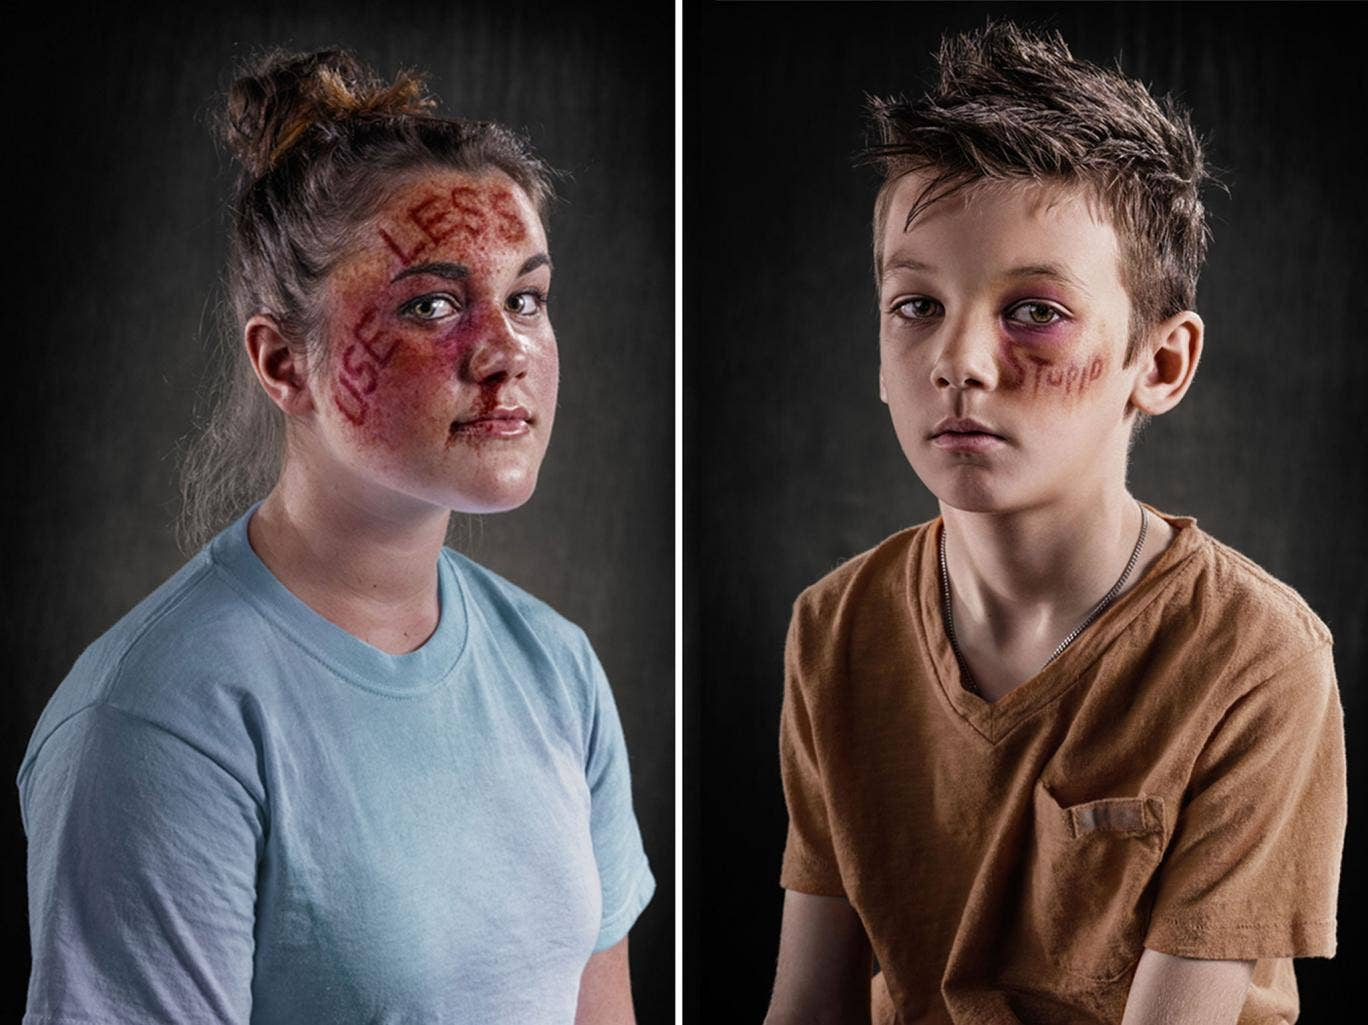 The Weapon of Choice campaign used professional make-up artists and photographers to imagine a world where words cause physical as well as mental injury